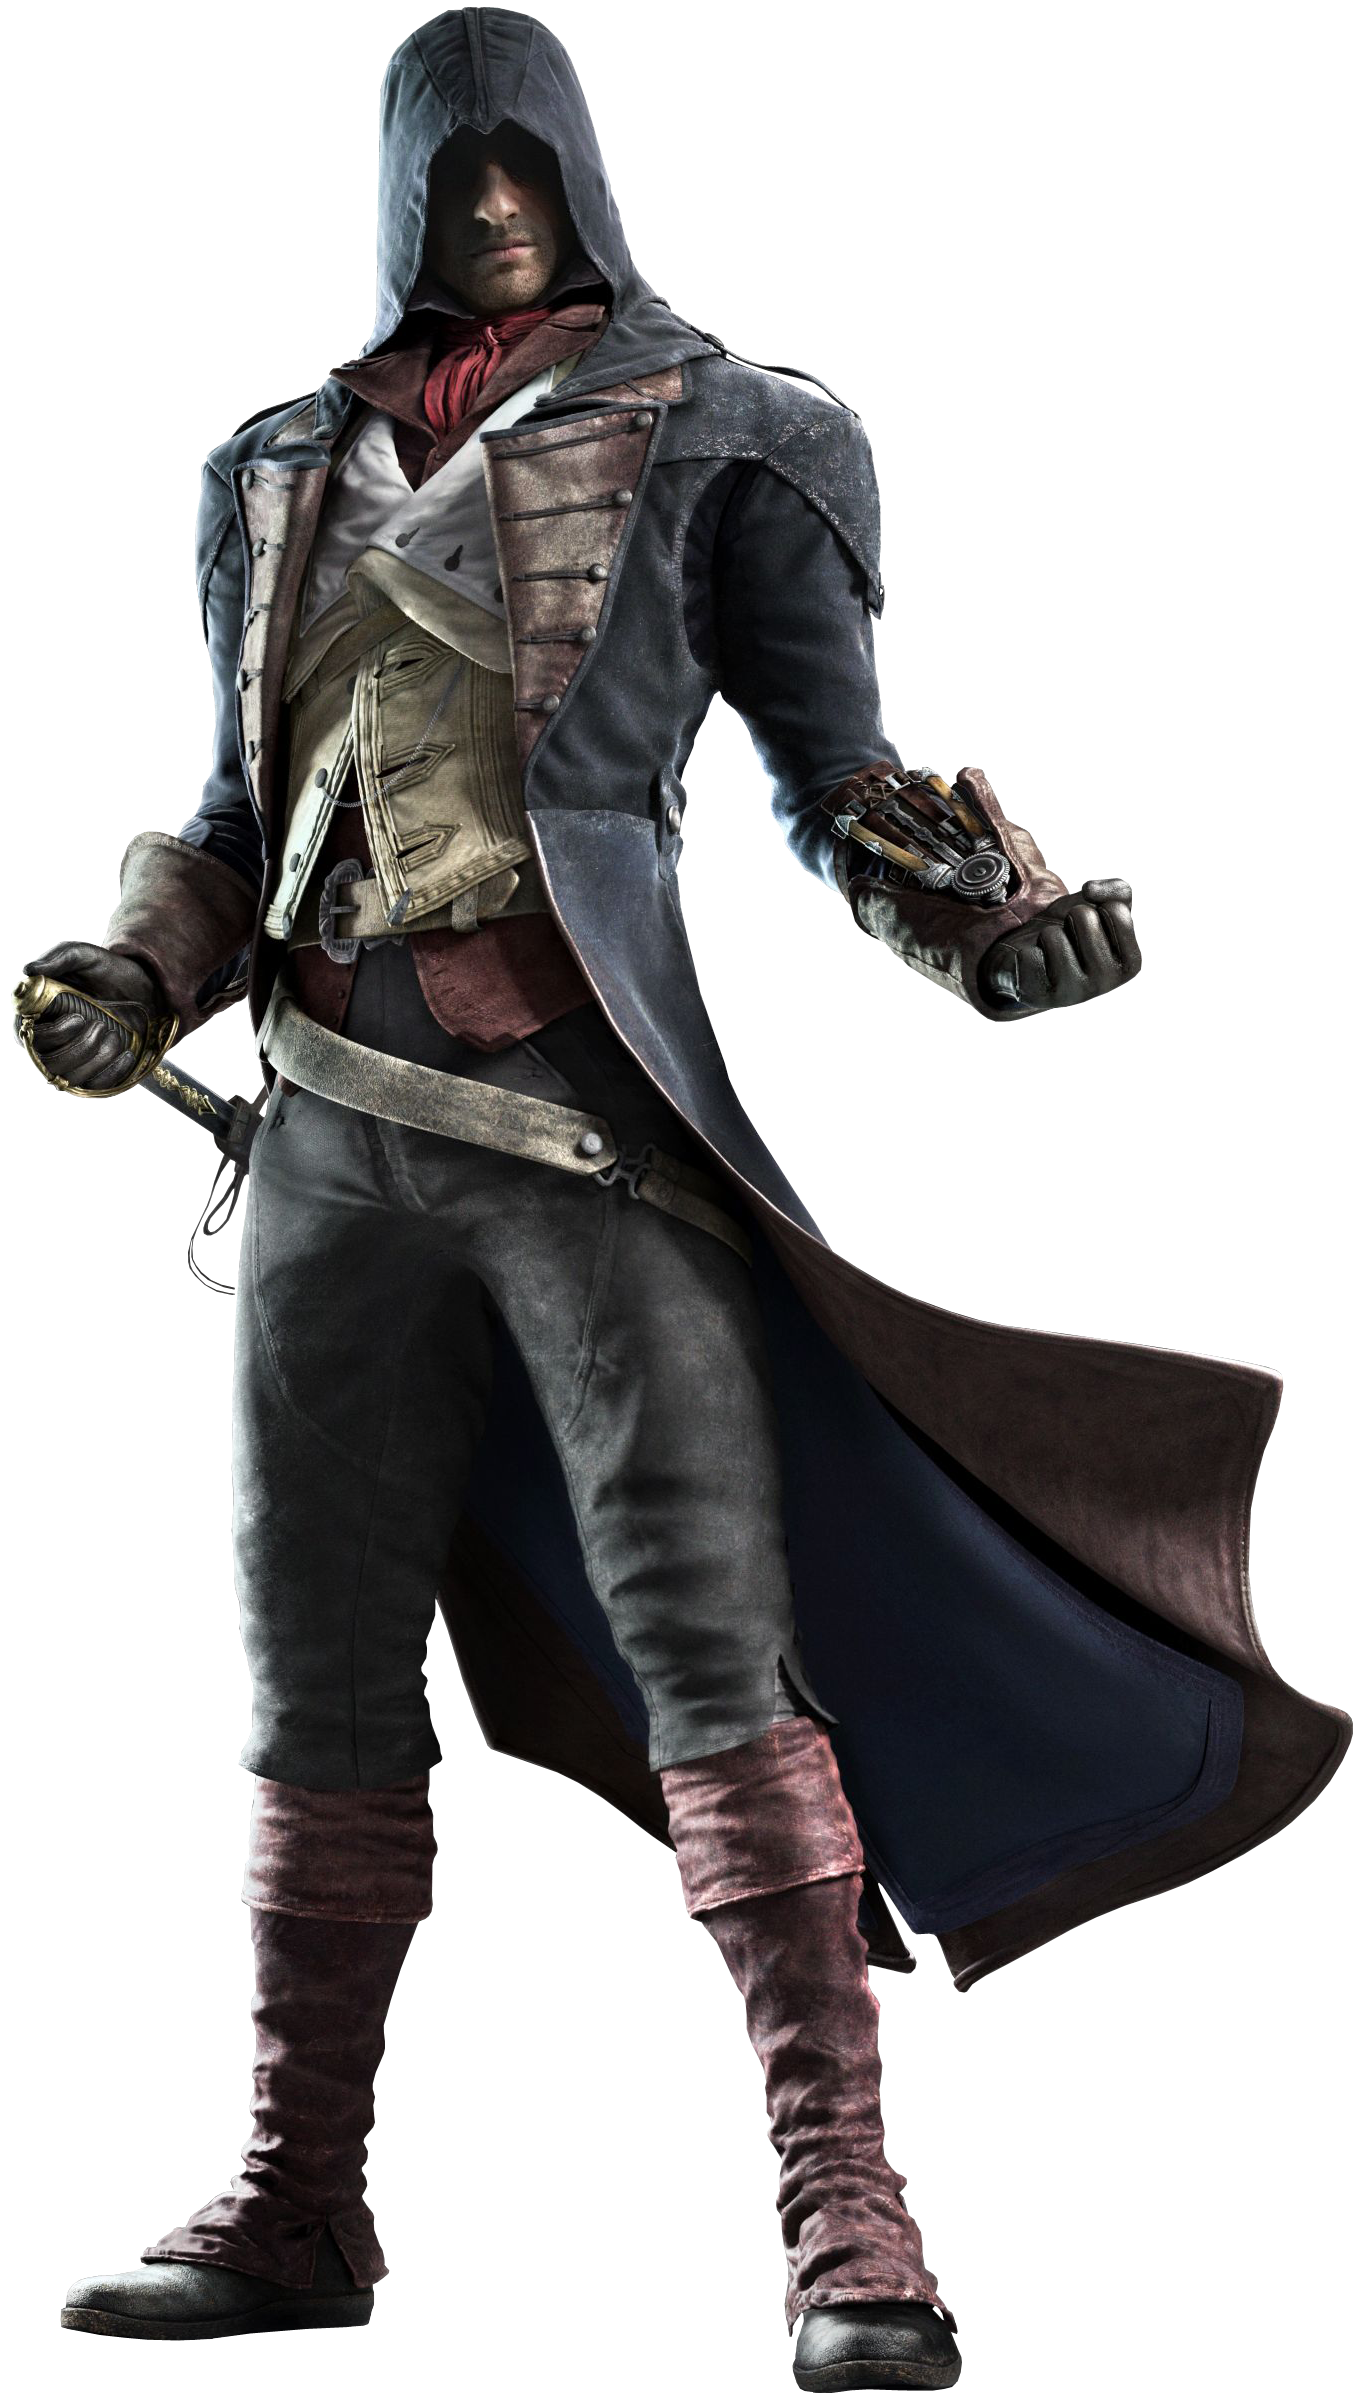 Download Assassins Creed Unity Clipart HQ PNG Image.